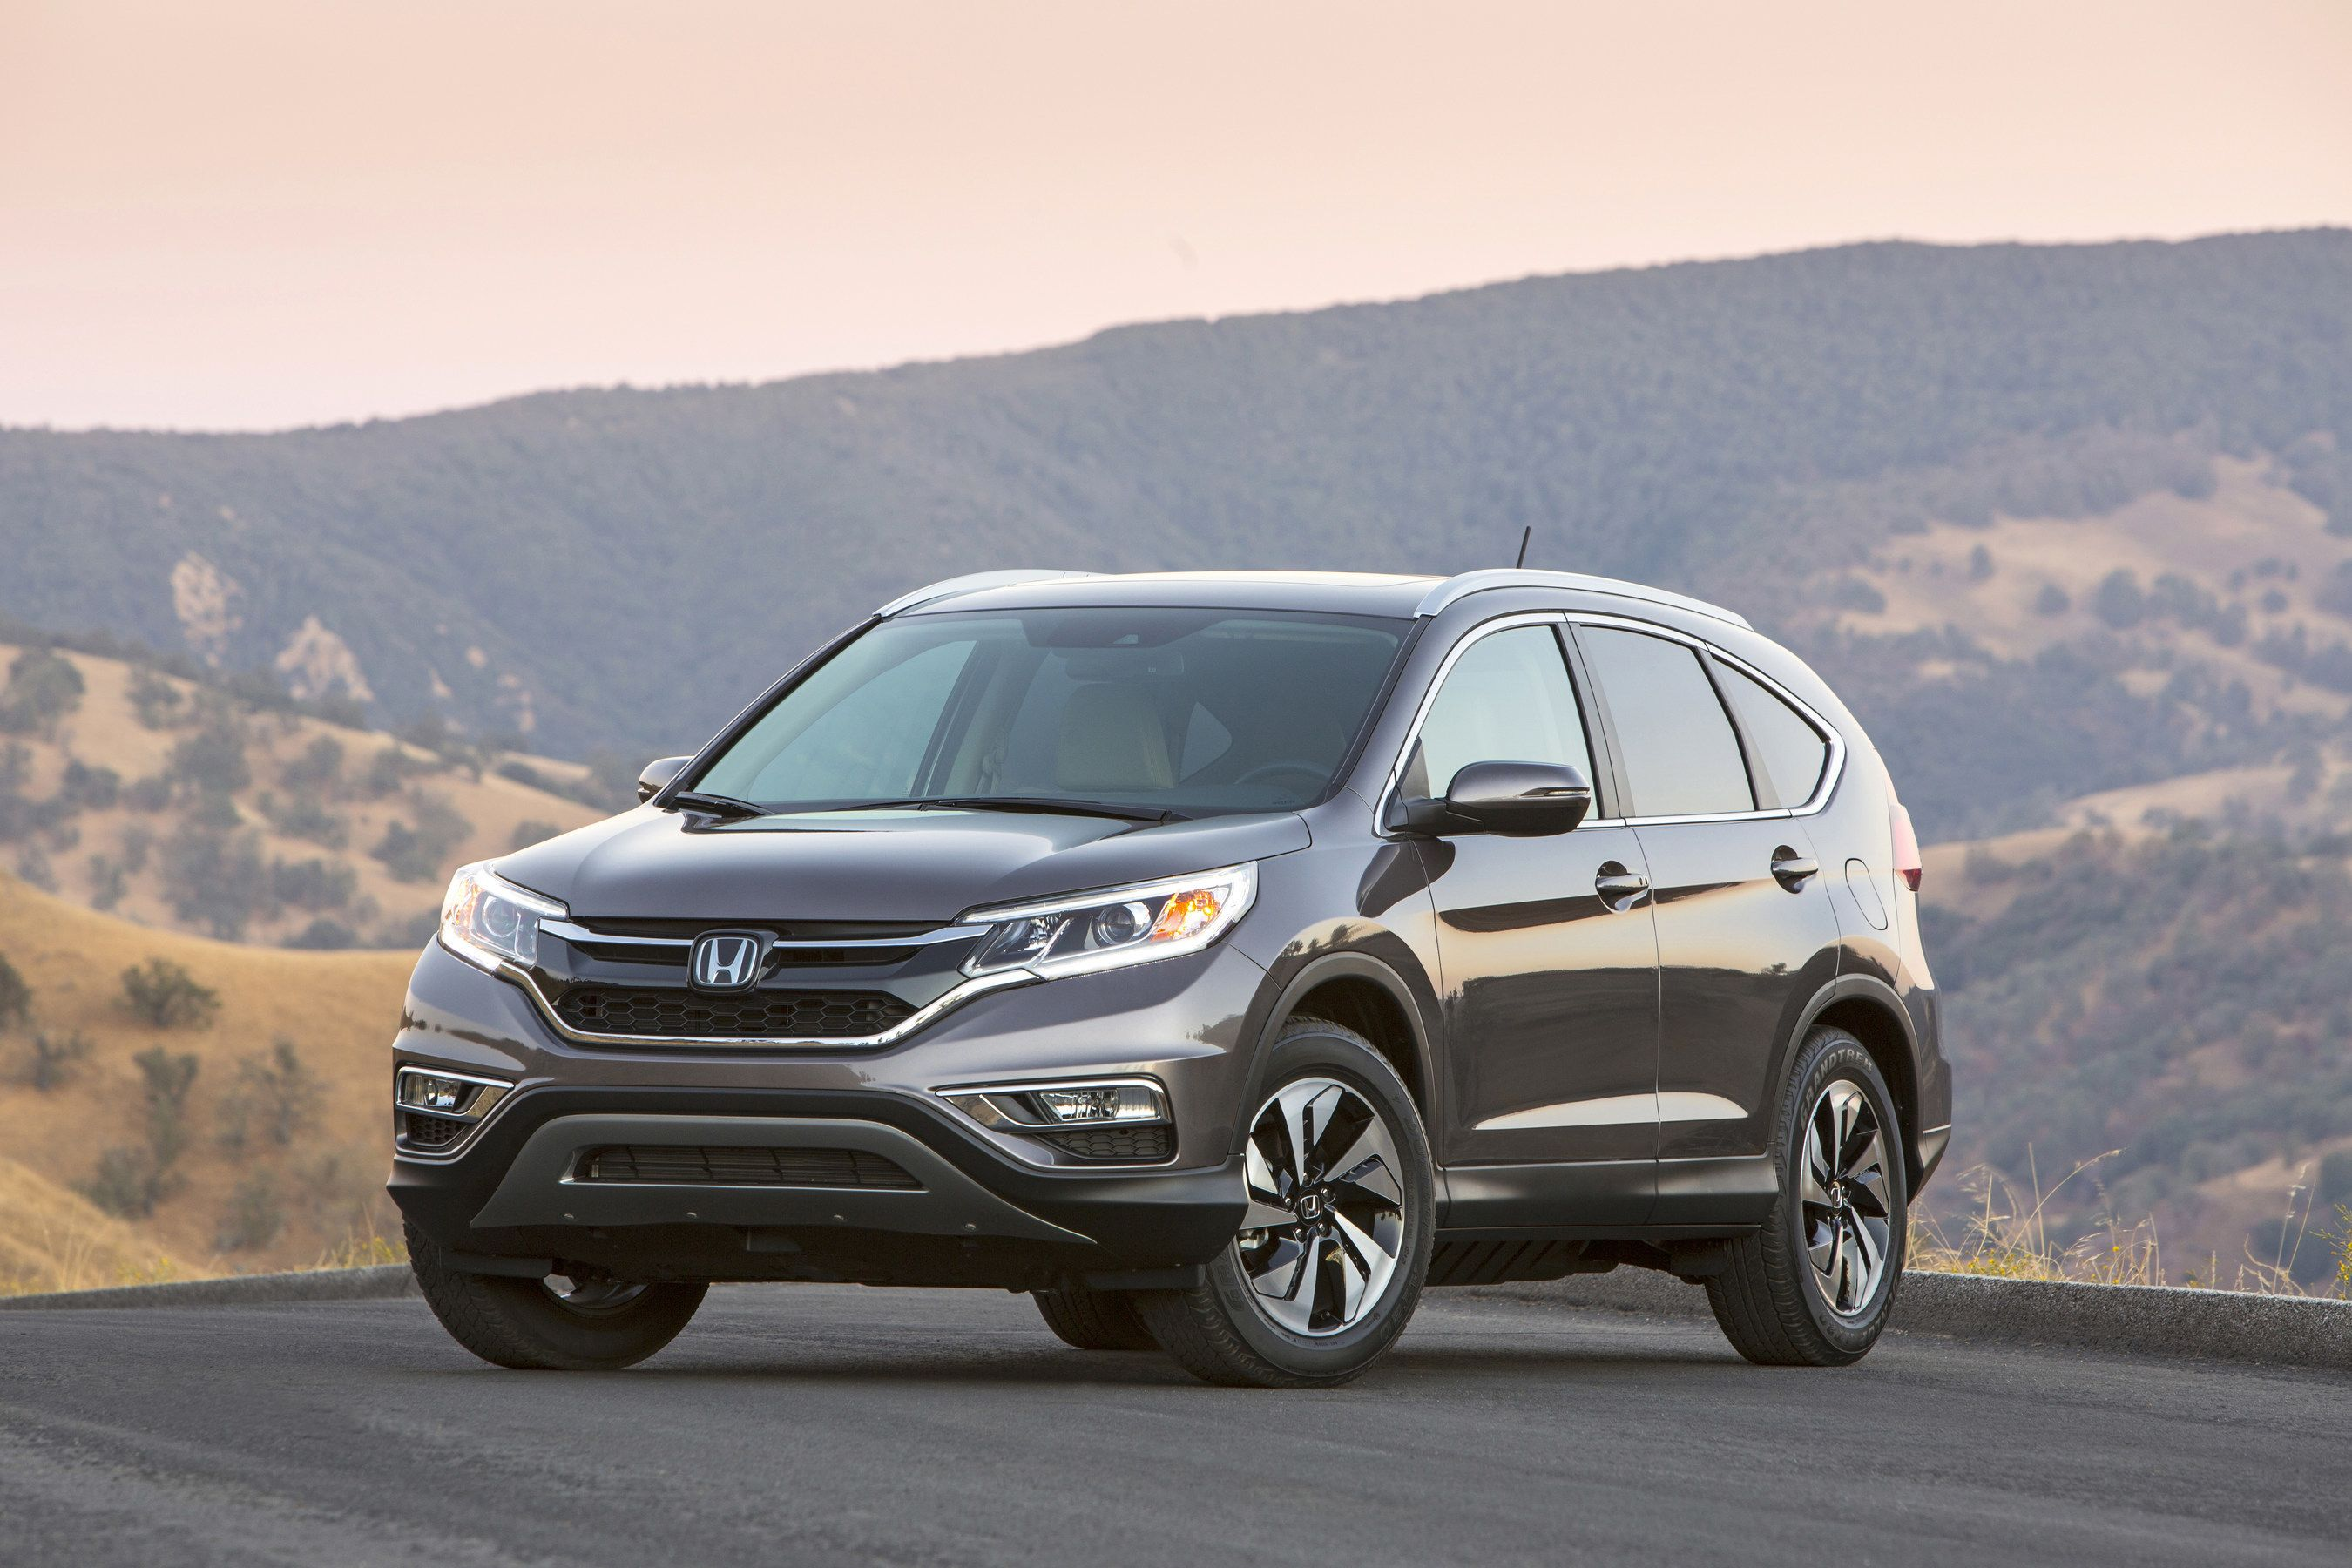 Honda crv lease deals 2016 2016 honda cr v lease offer at 259 month with 0 down payment car release dates reviews pinterest lease deals honda crv and